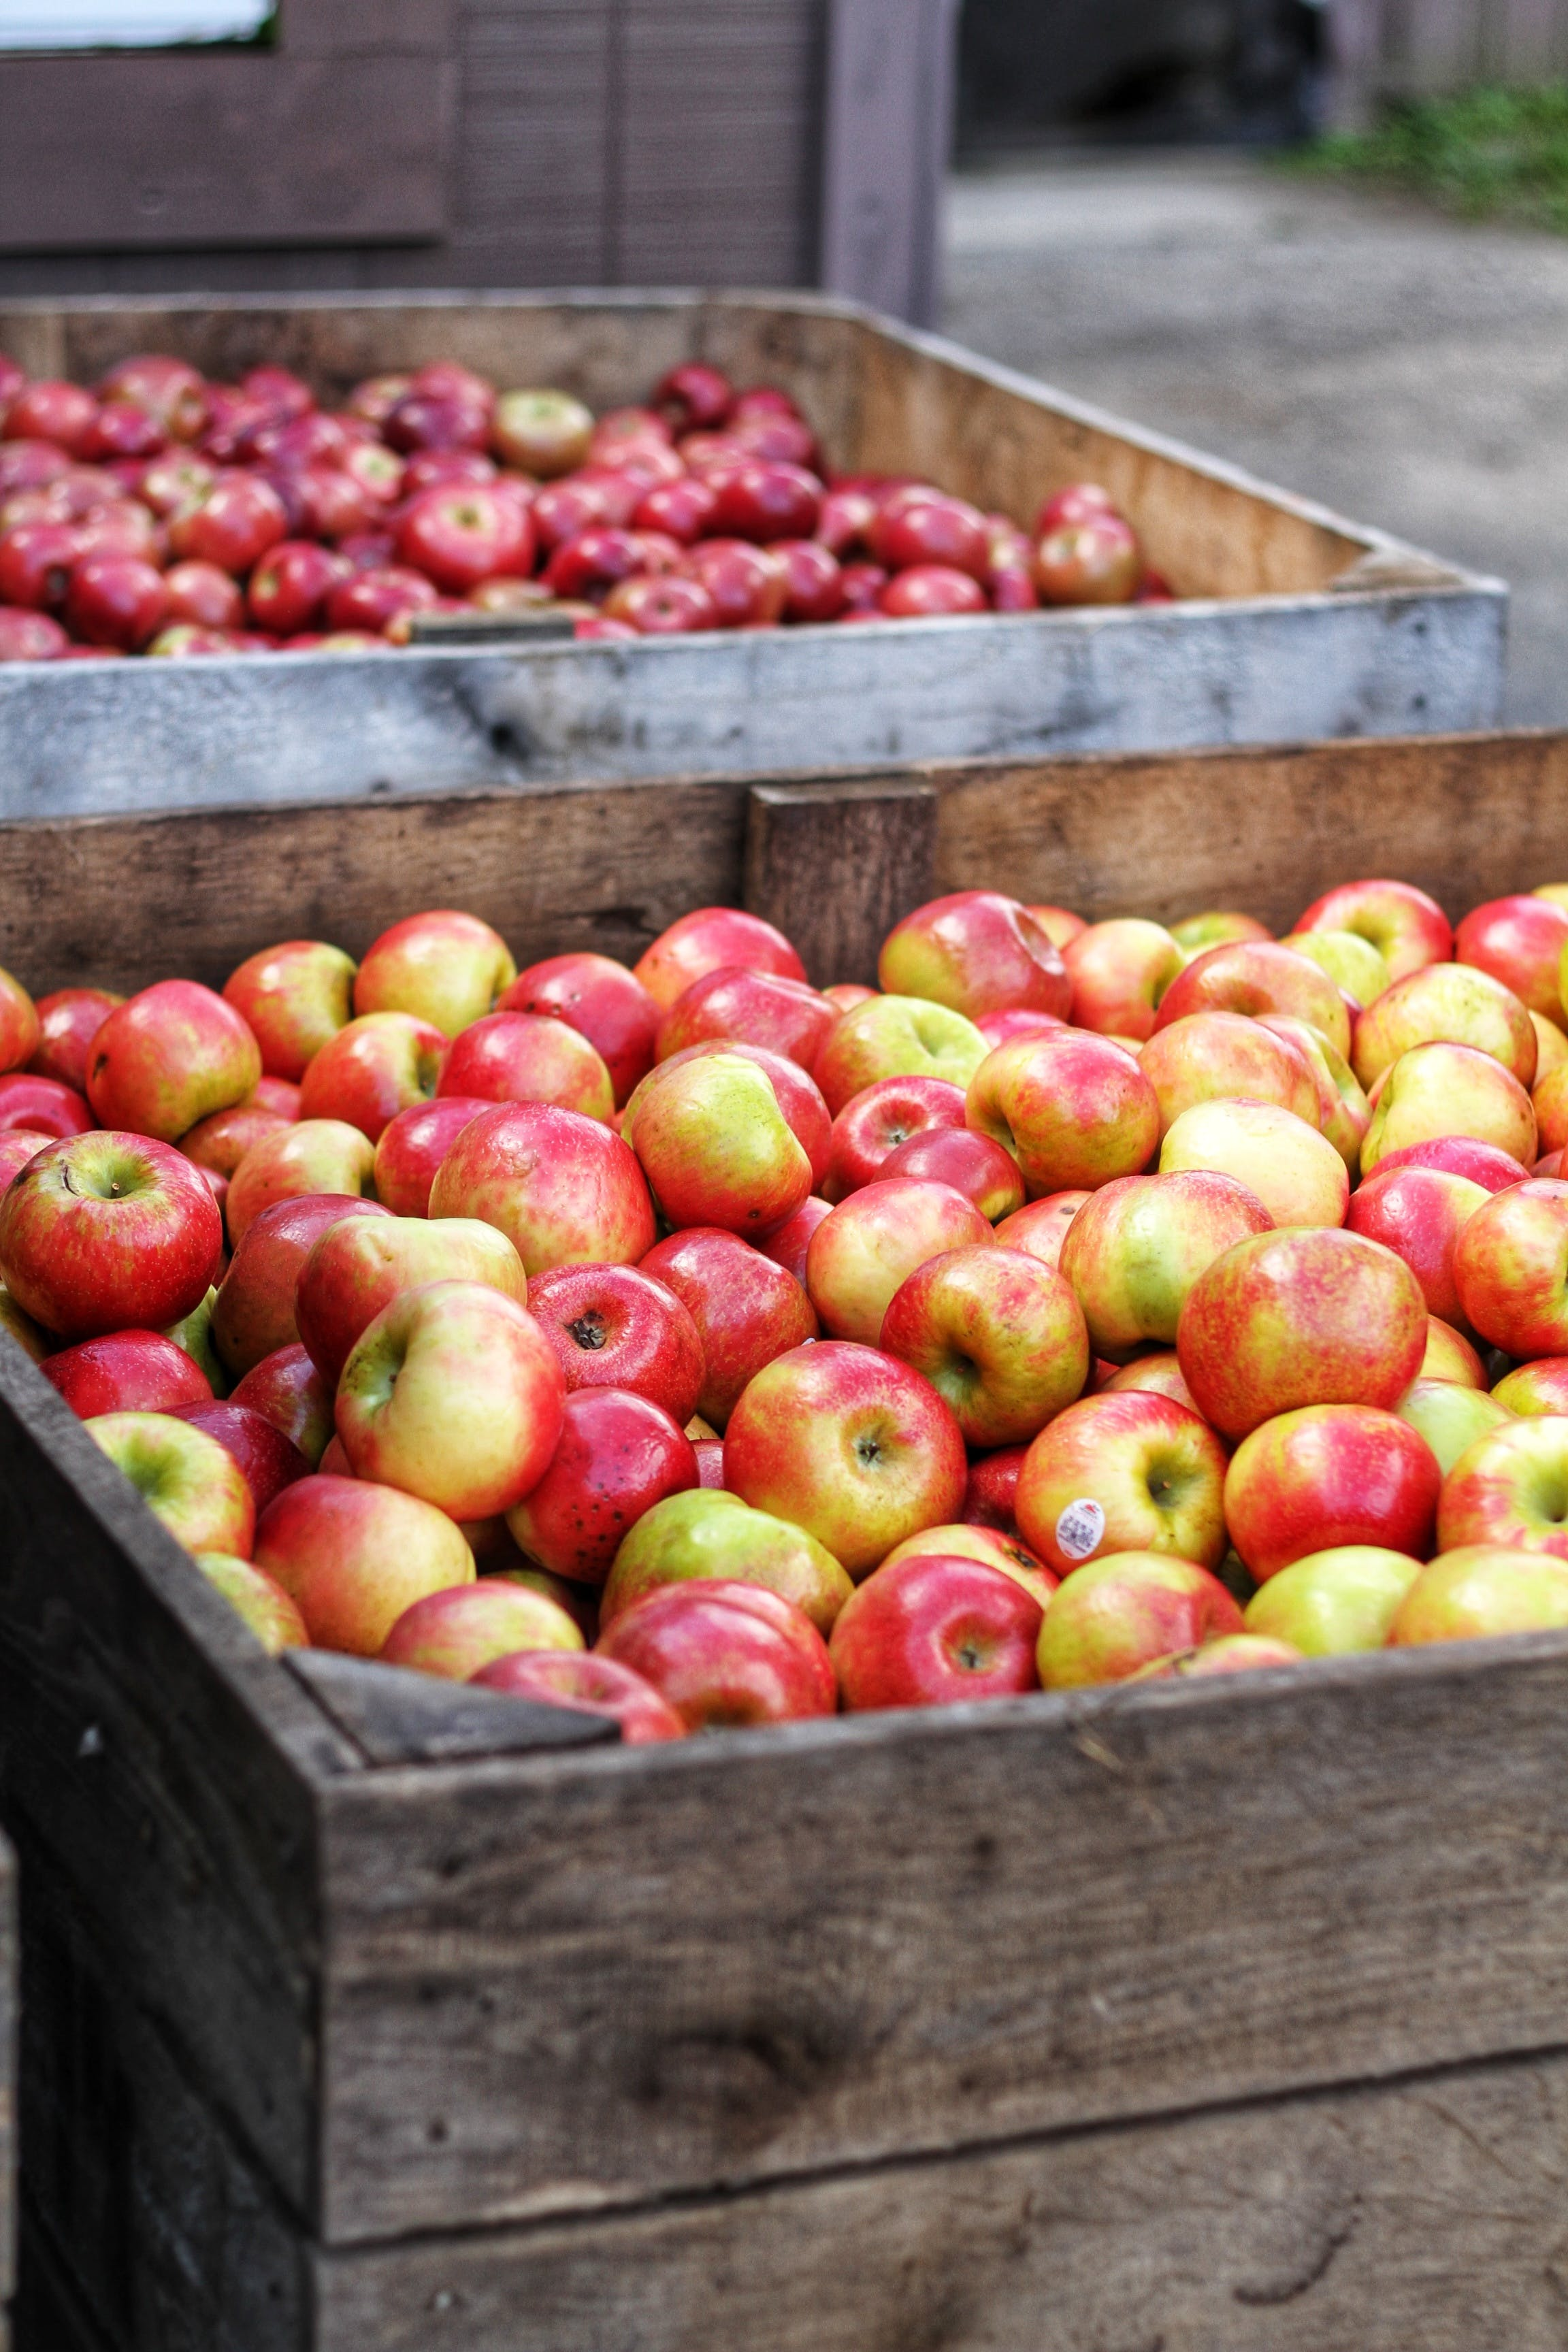 Red Apple Lot in Wooden Crates